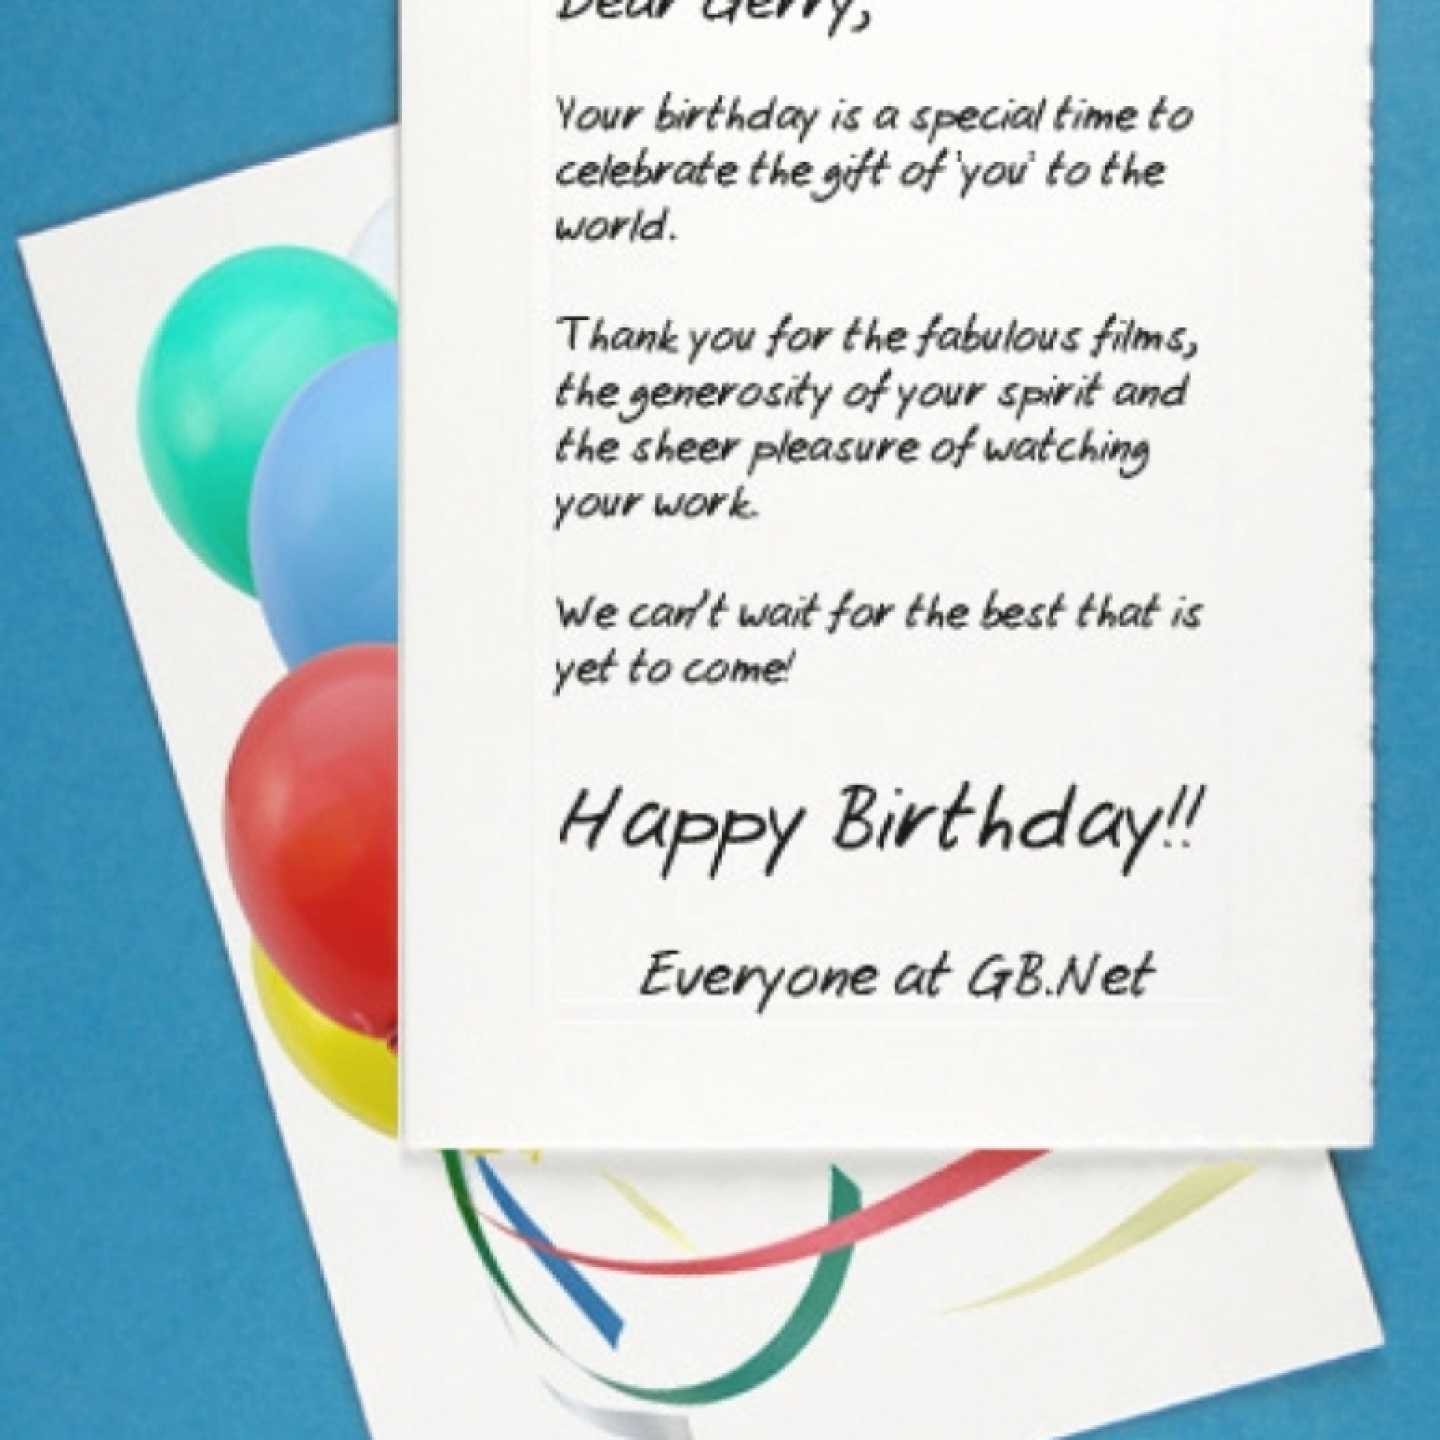 22 birthday card message ; What-to-Write-in-a-Birthday-Card%253A-48-Birthday-Messages-and-Wishes-%252C-birthday-card-messages-friend-what-to-write-in-a-birthday-card